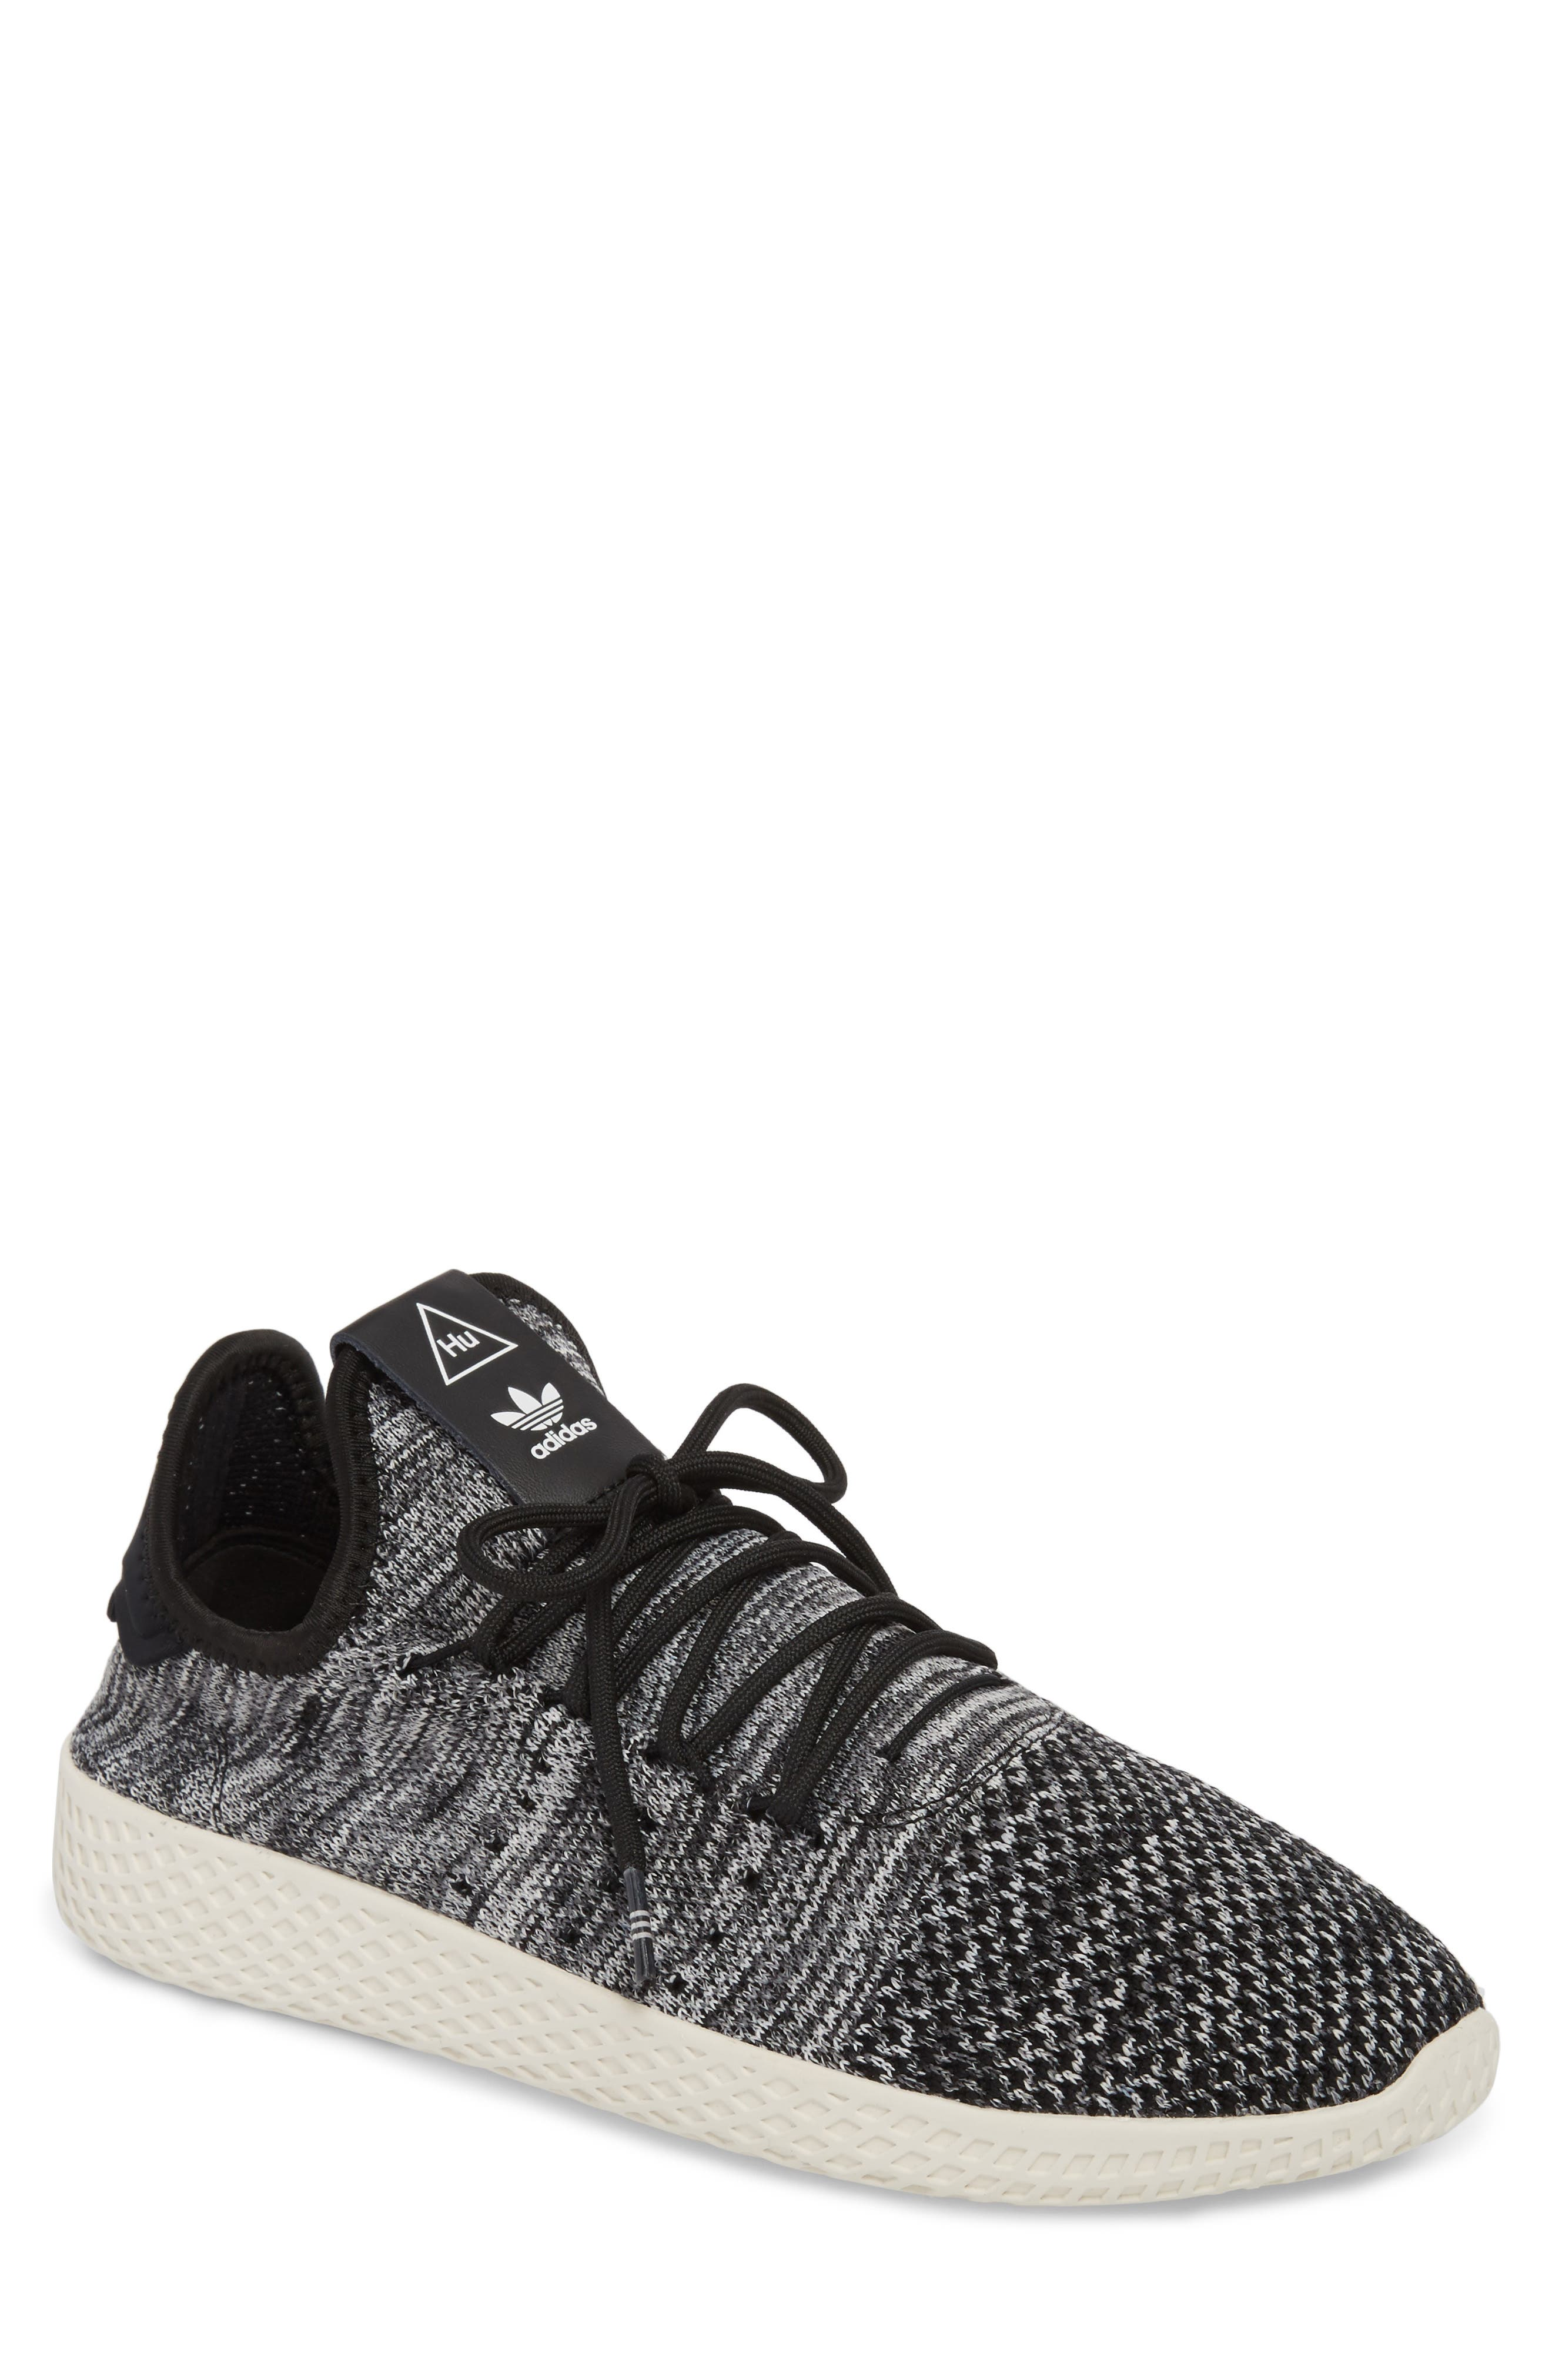 Pharrell Williams Tennis Hu Sneaker,                             Main thumbnail 1, color,                             Chalk White/ Core Black/ White